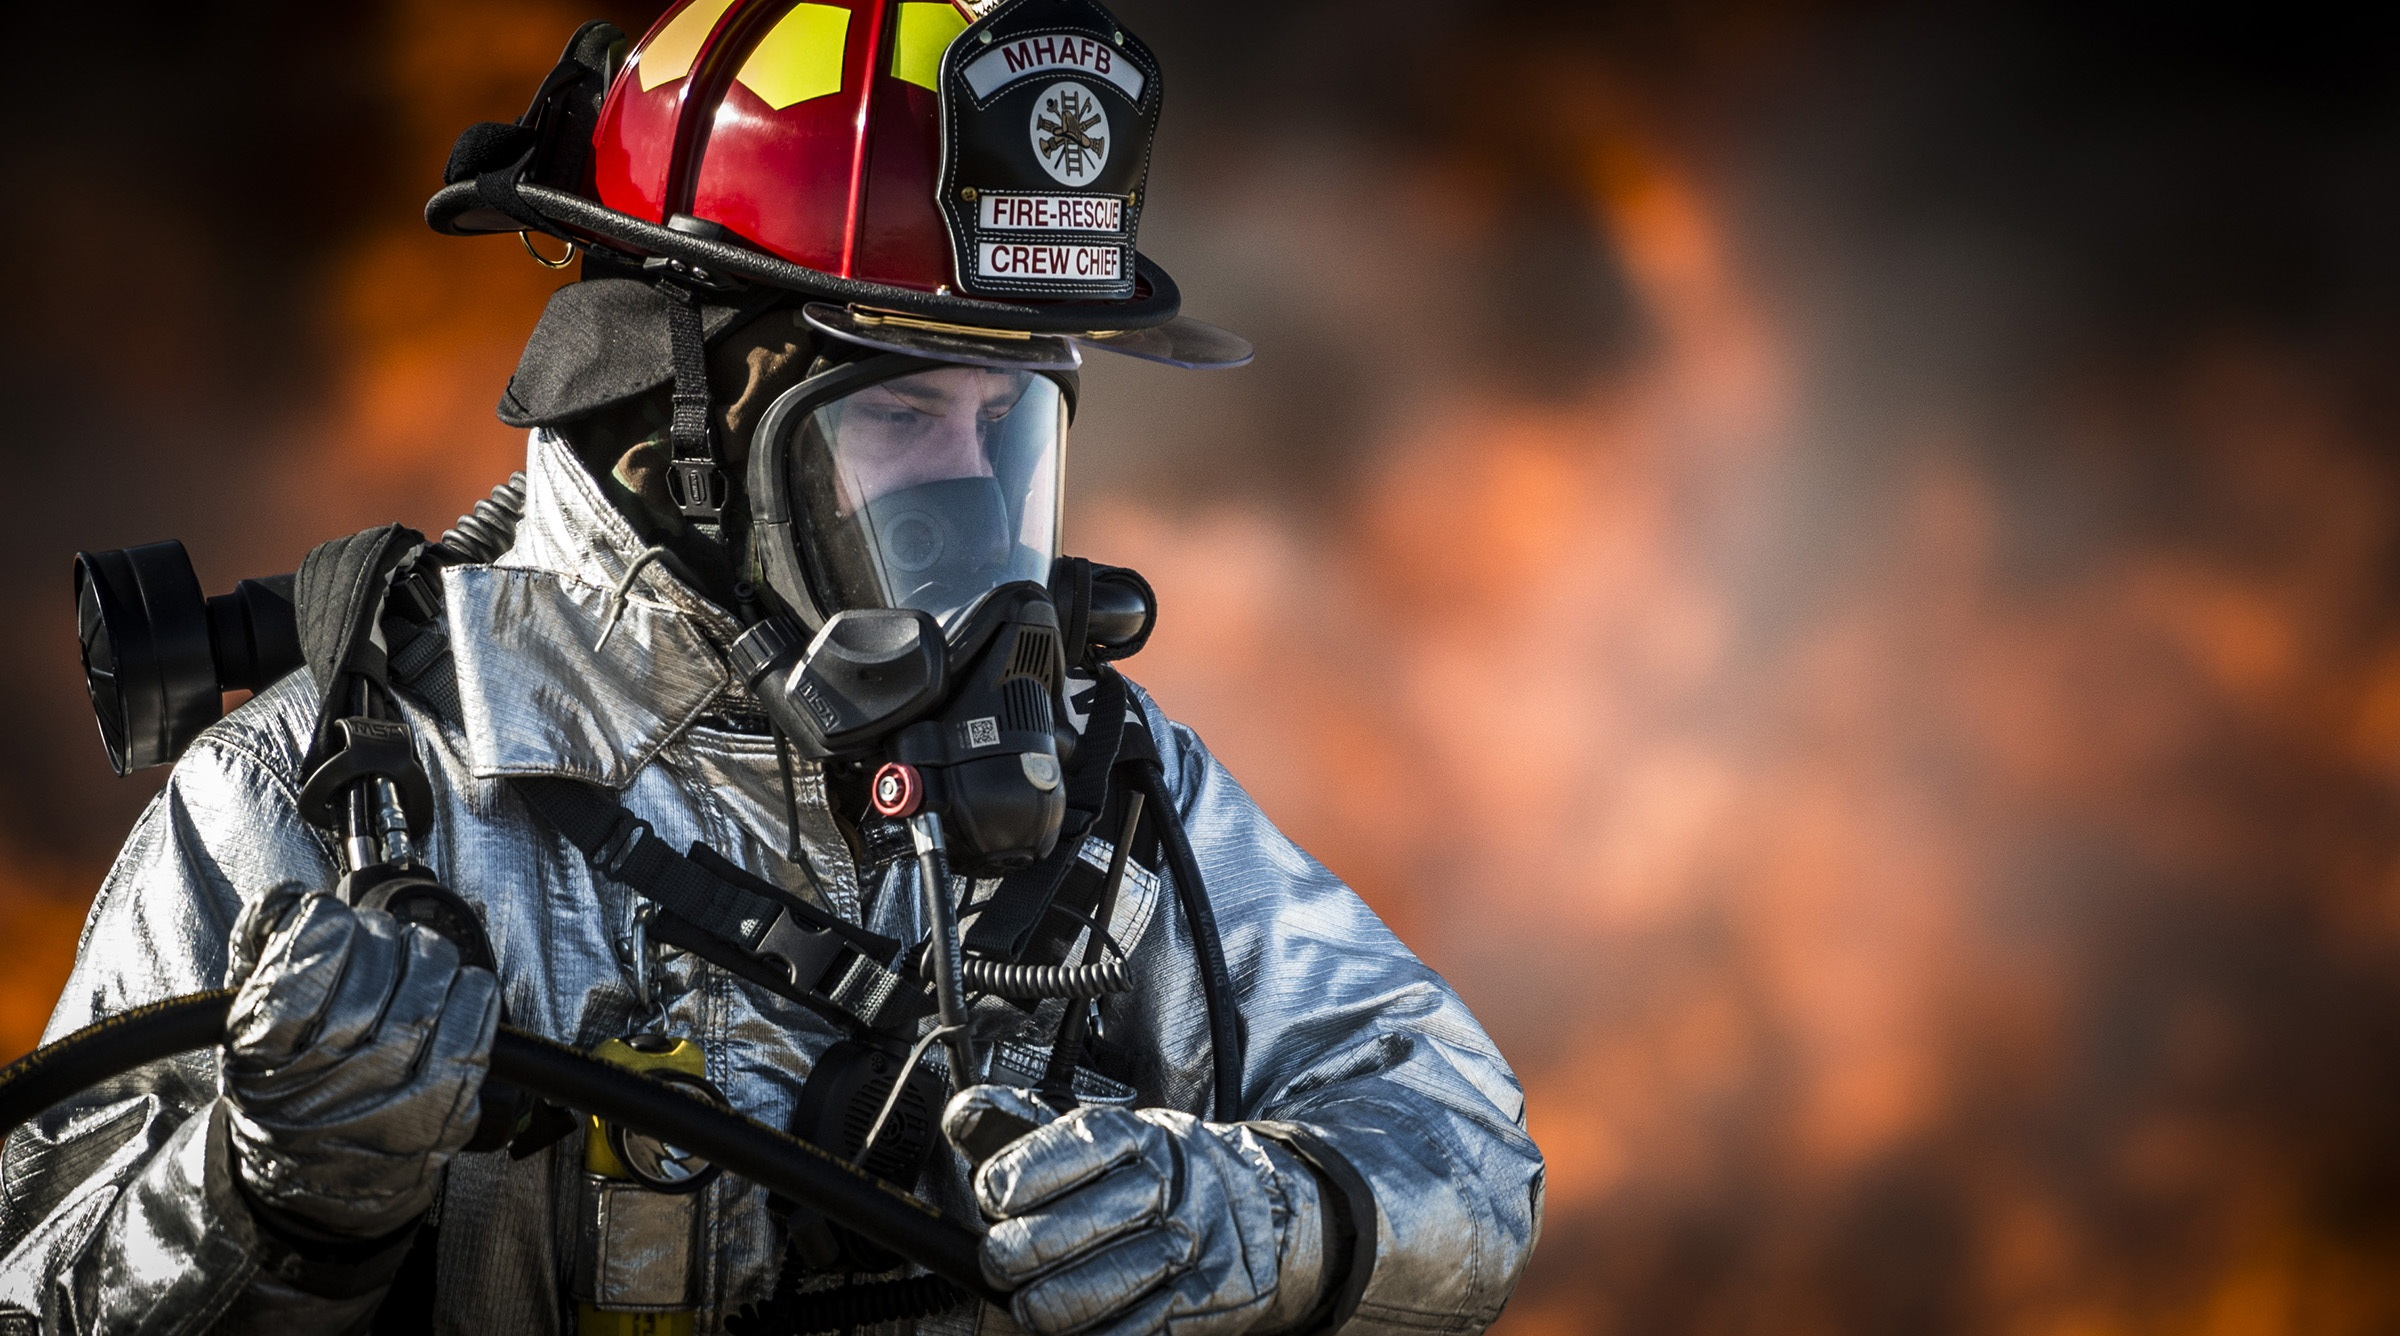 Requirement for Hotel Fire Safety: what property managers need for fire safety